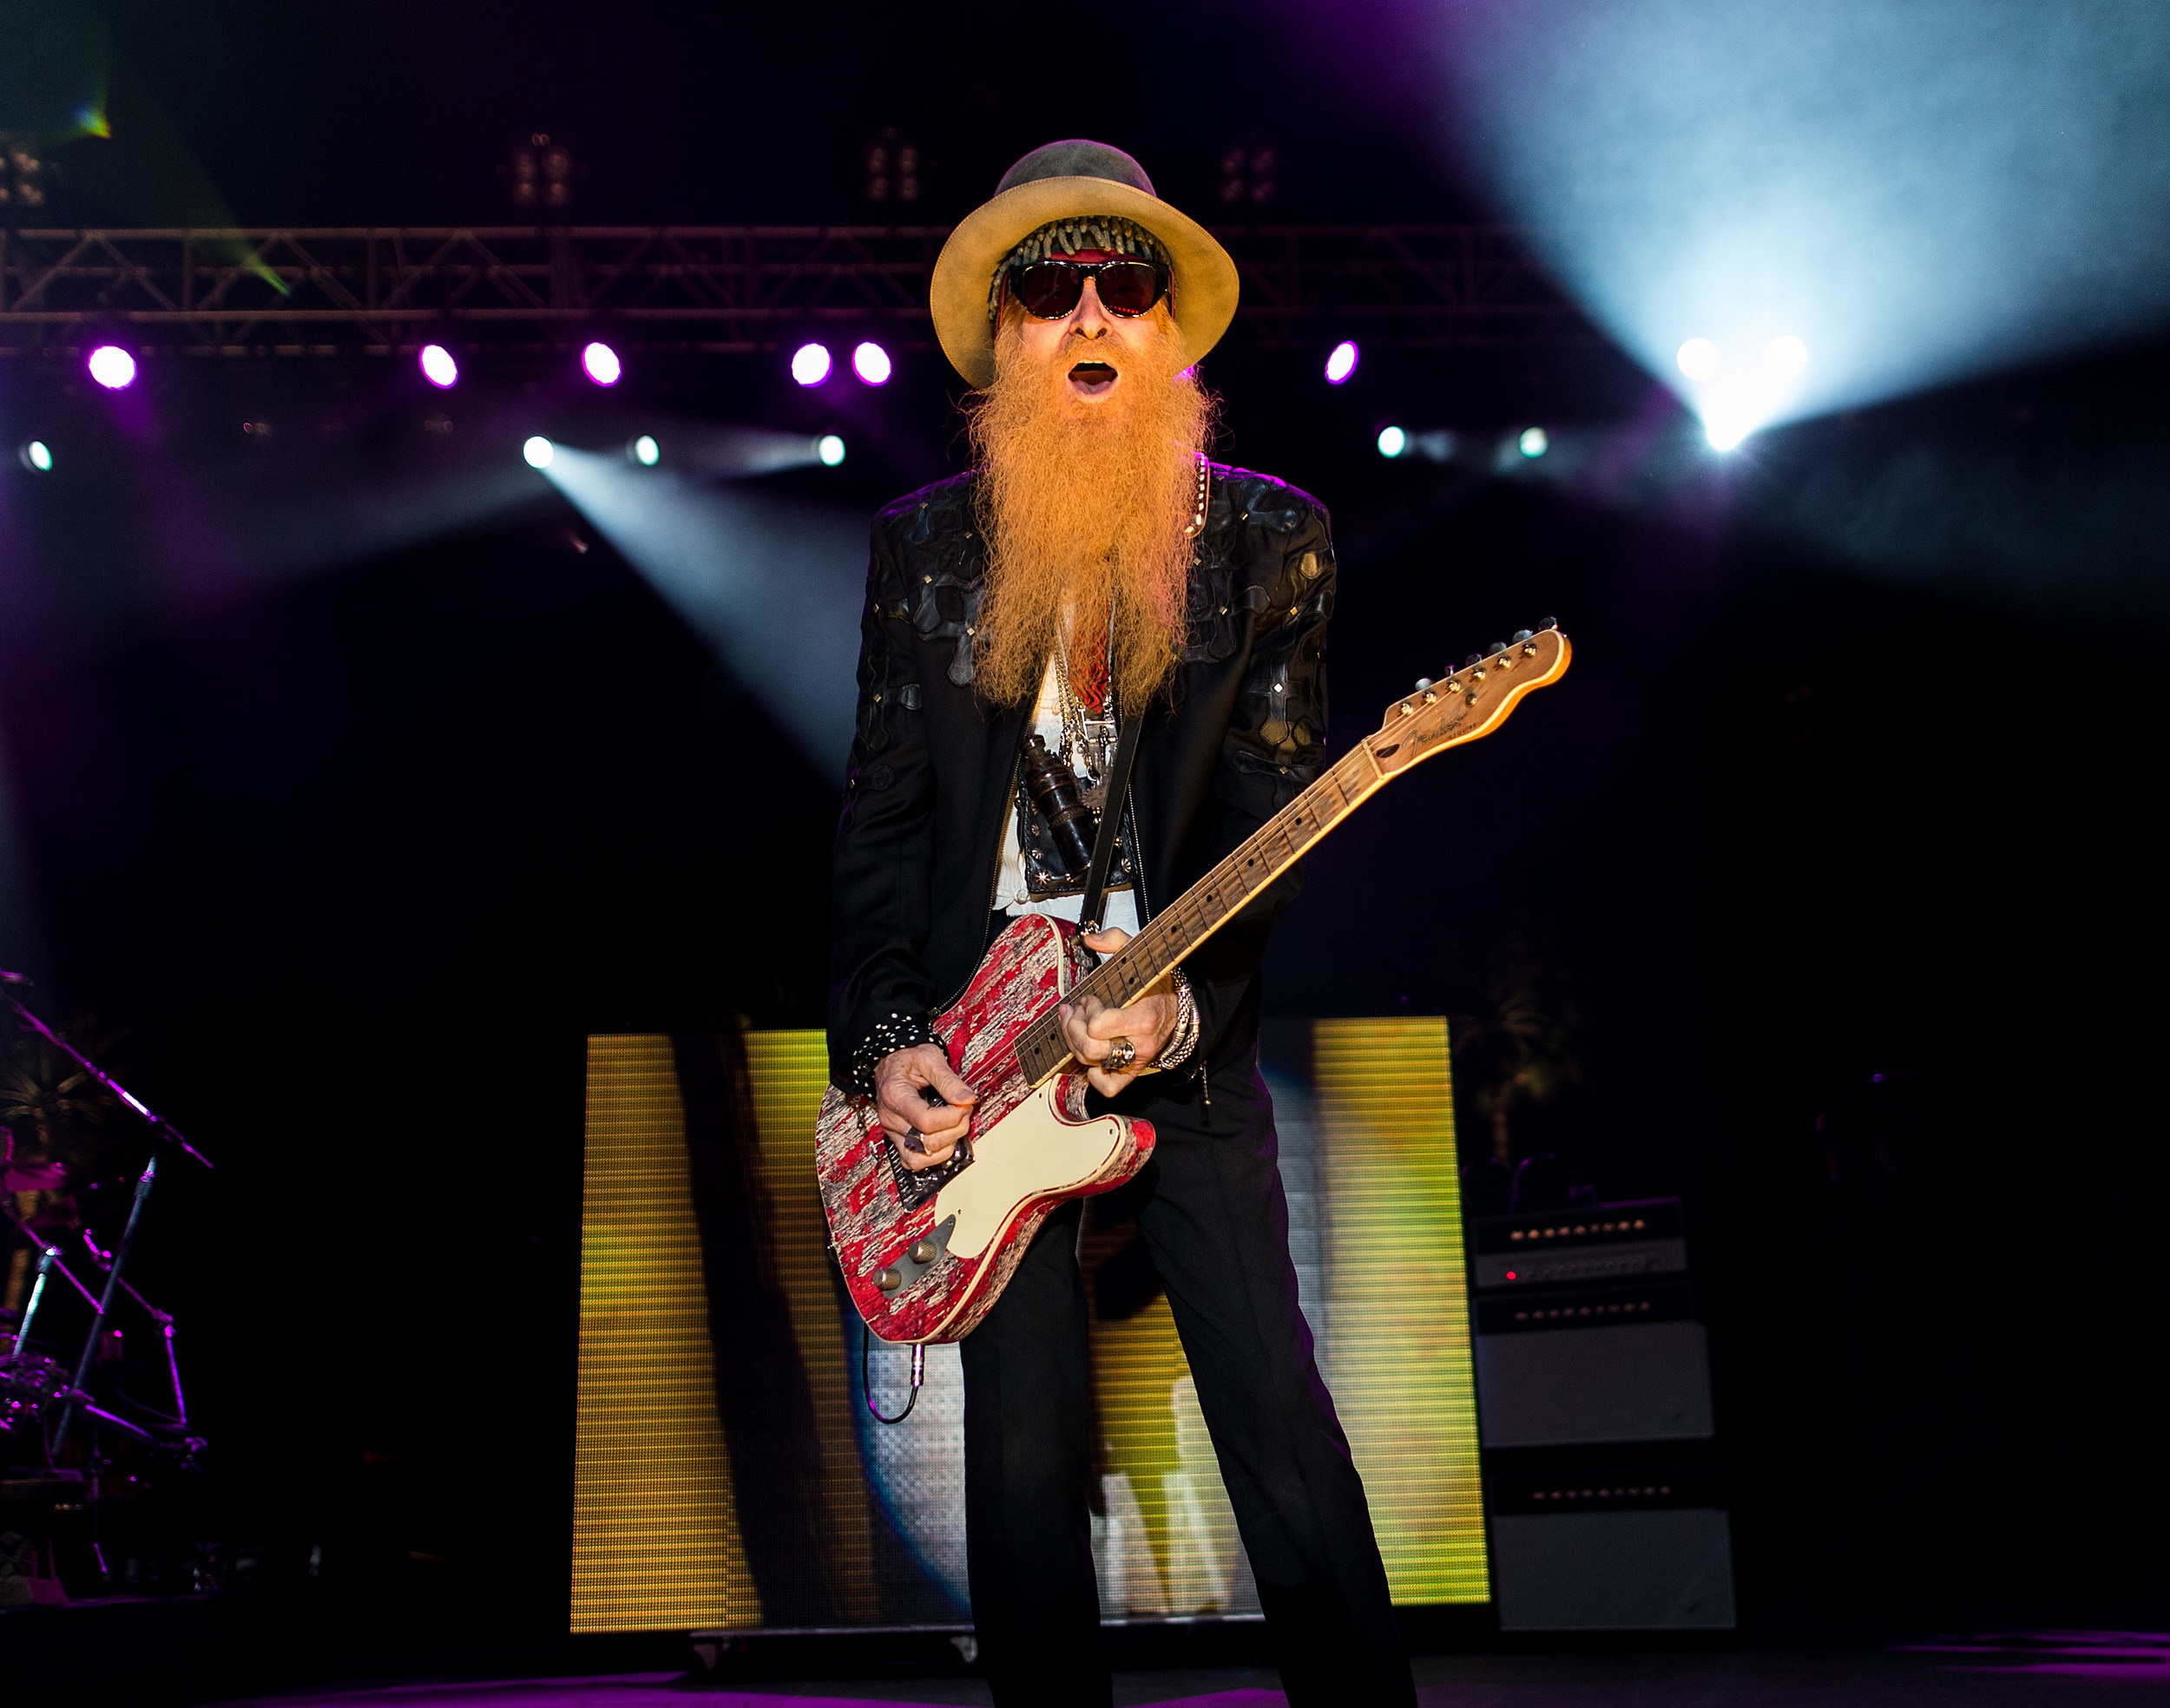 billy gibbons pearly gates